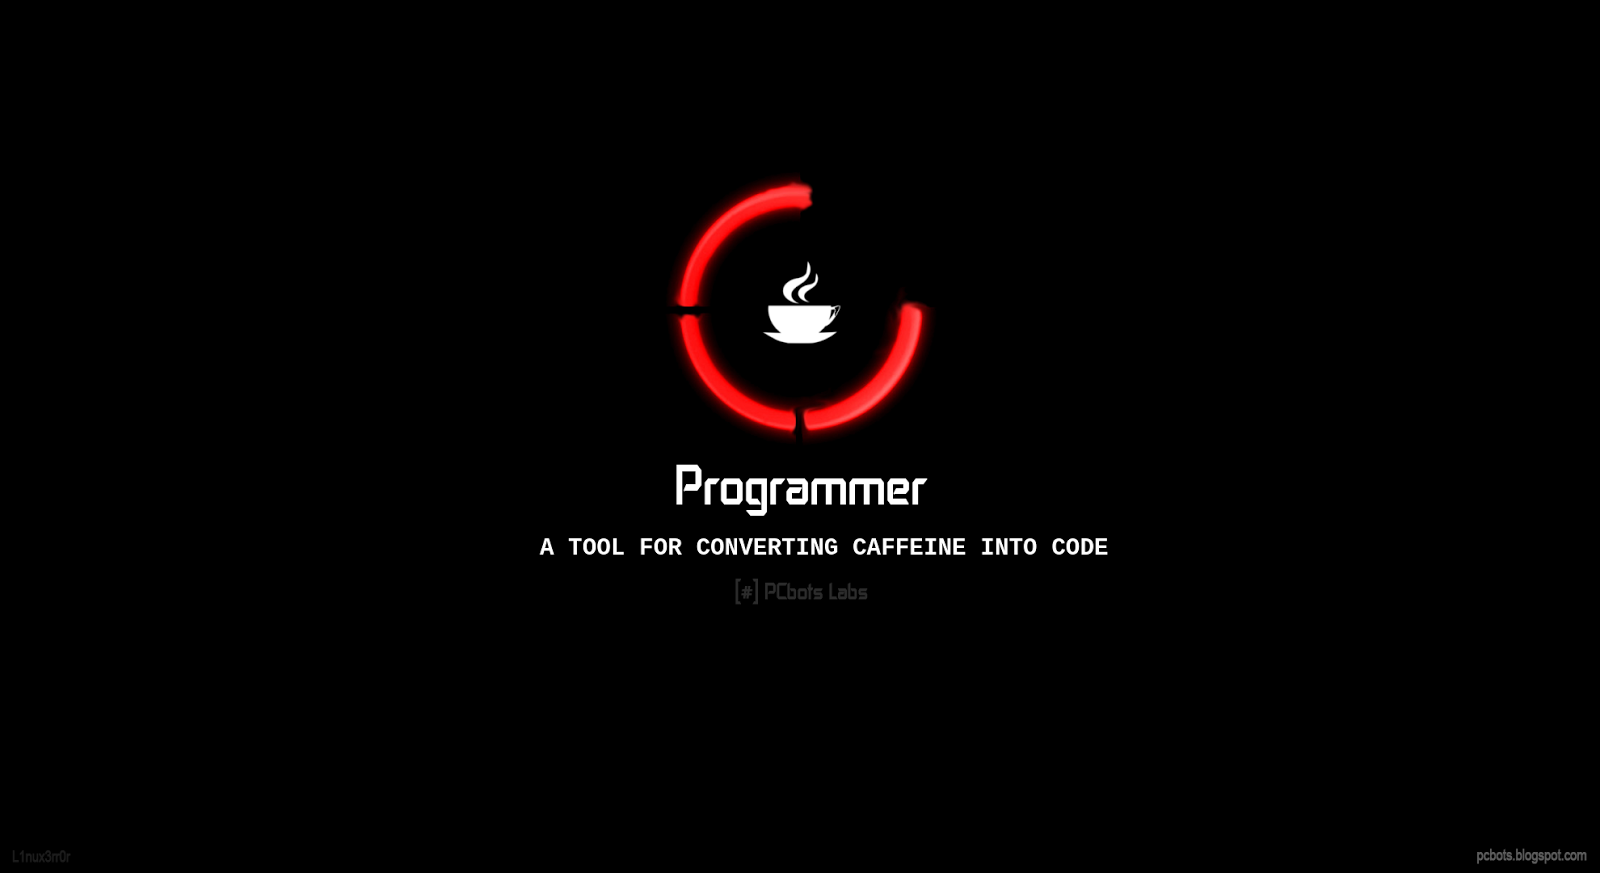 Programmer HD Wallpaper by PCbots.png